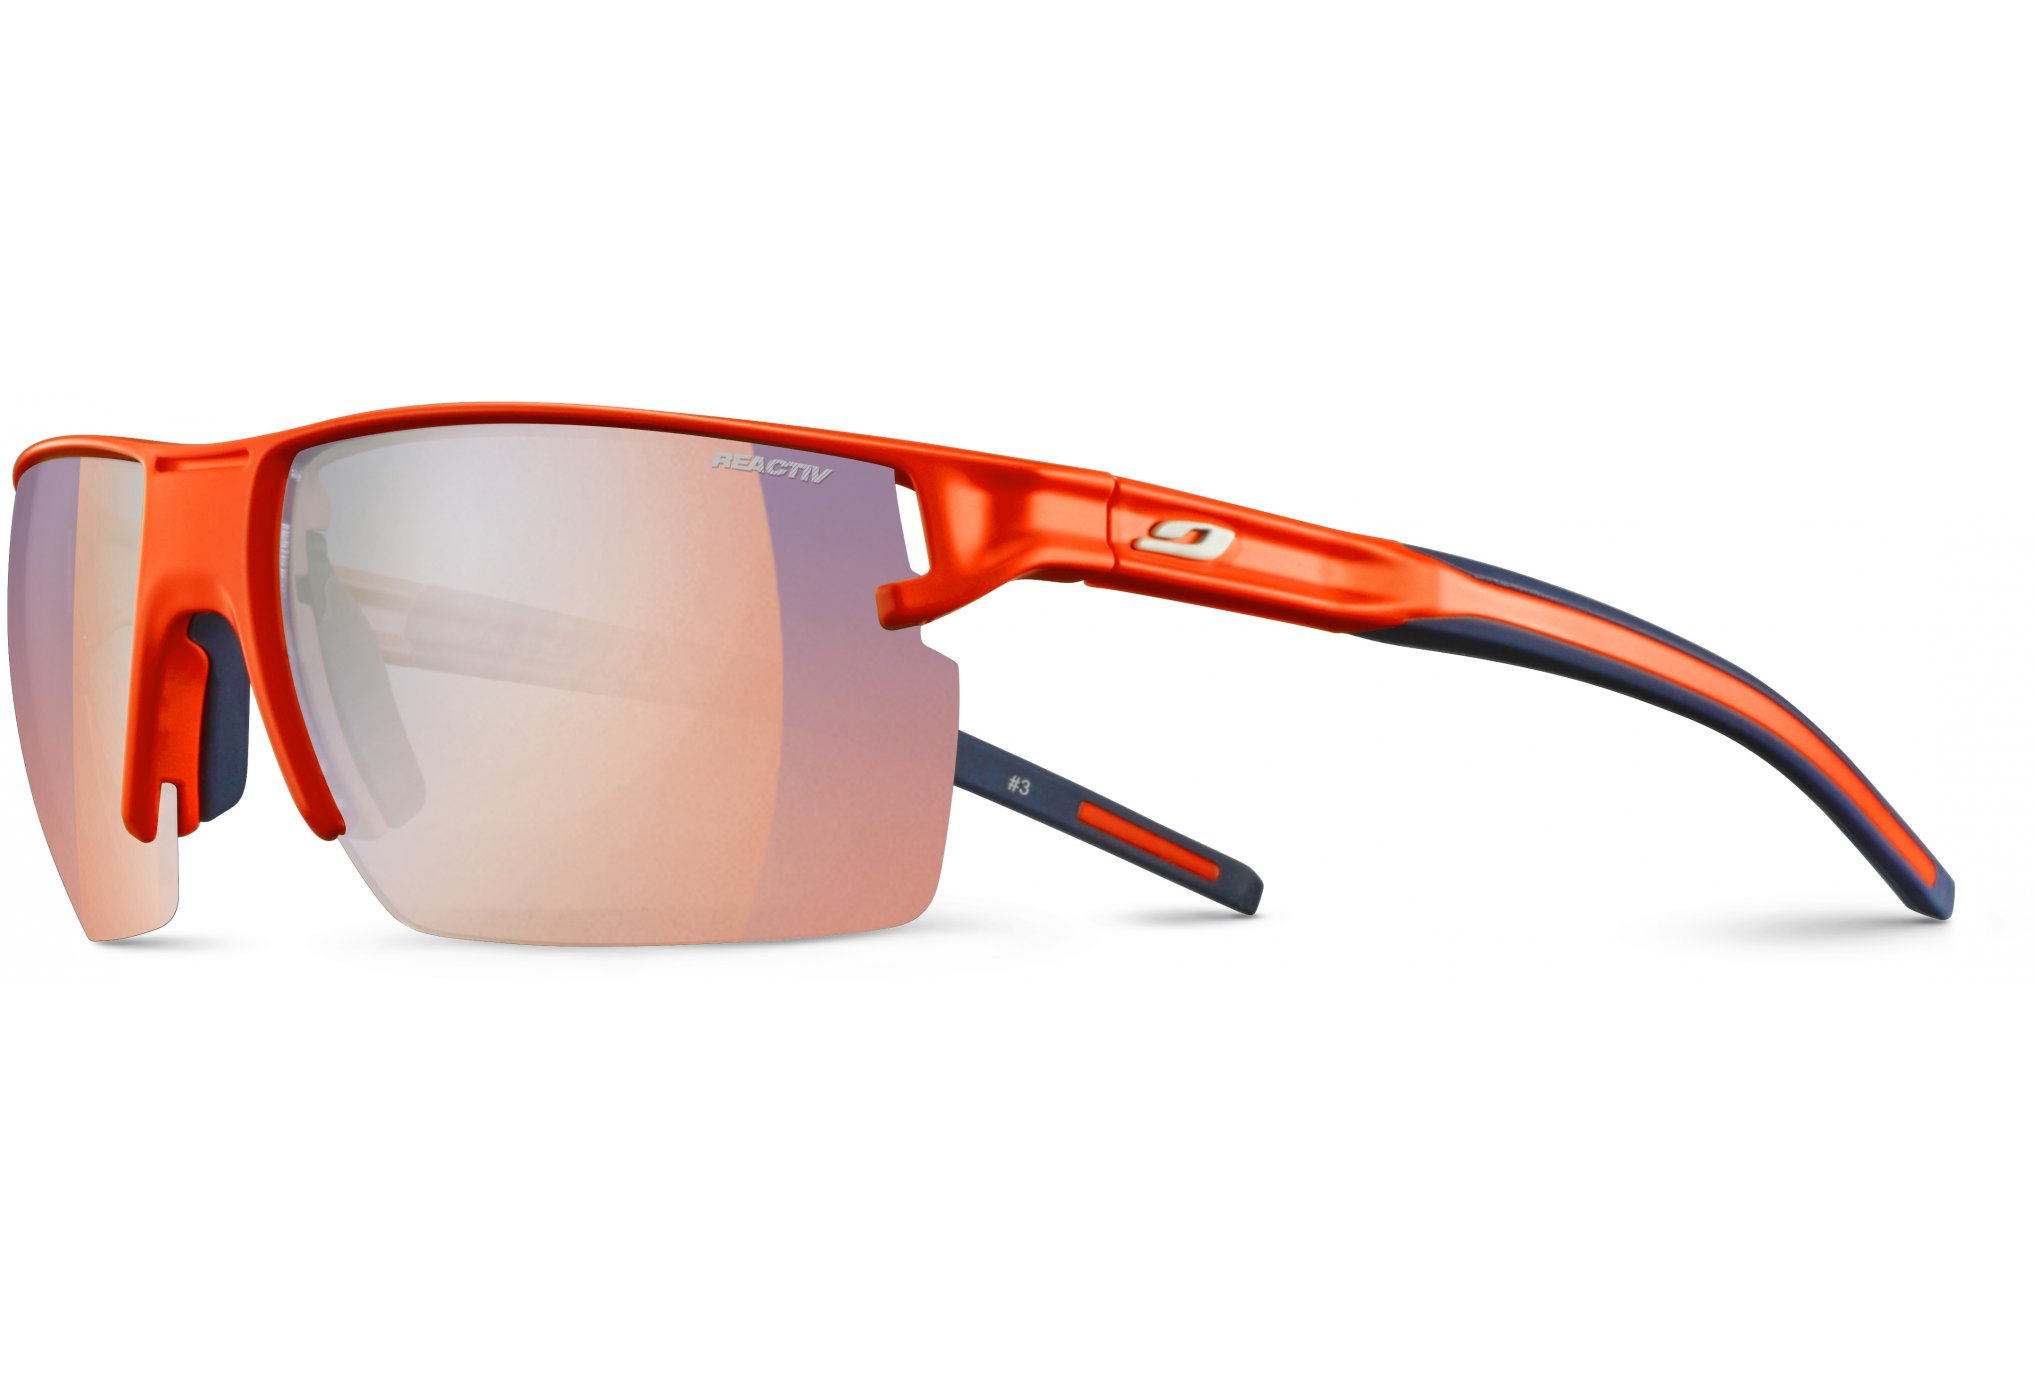 e1d8e5bd89 Julbo Outline Zebra Light Red Lunettes